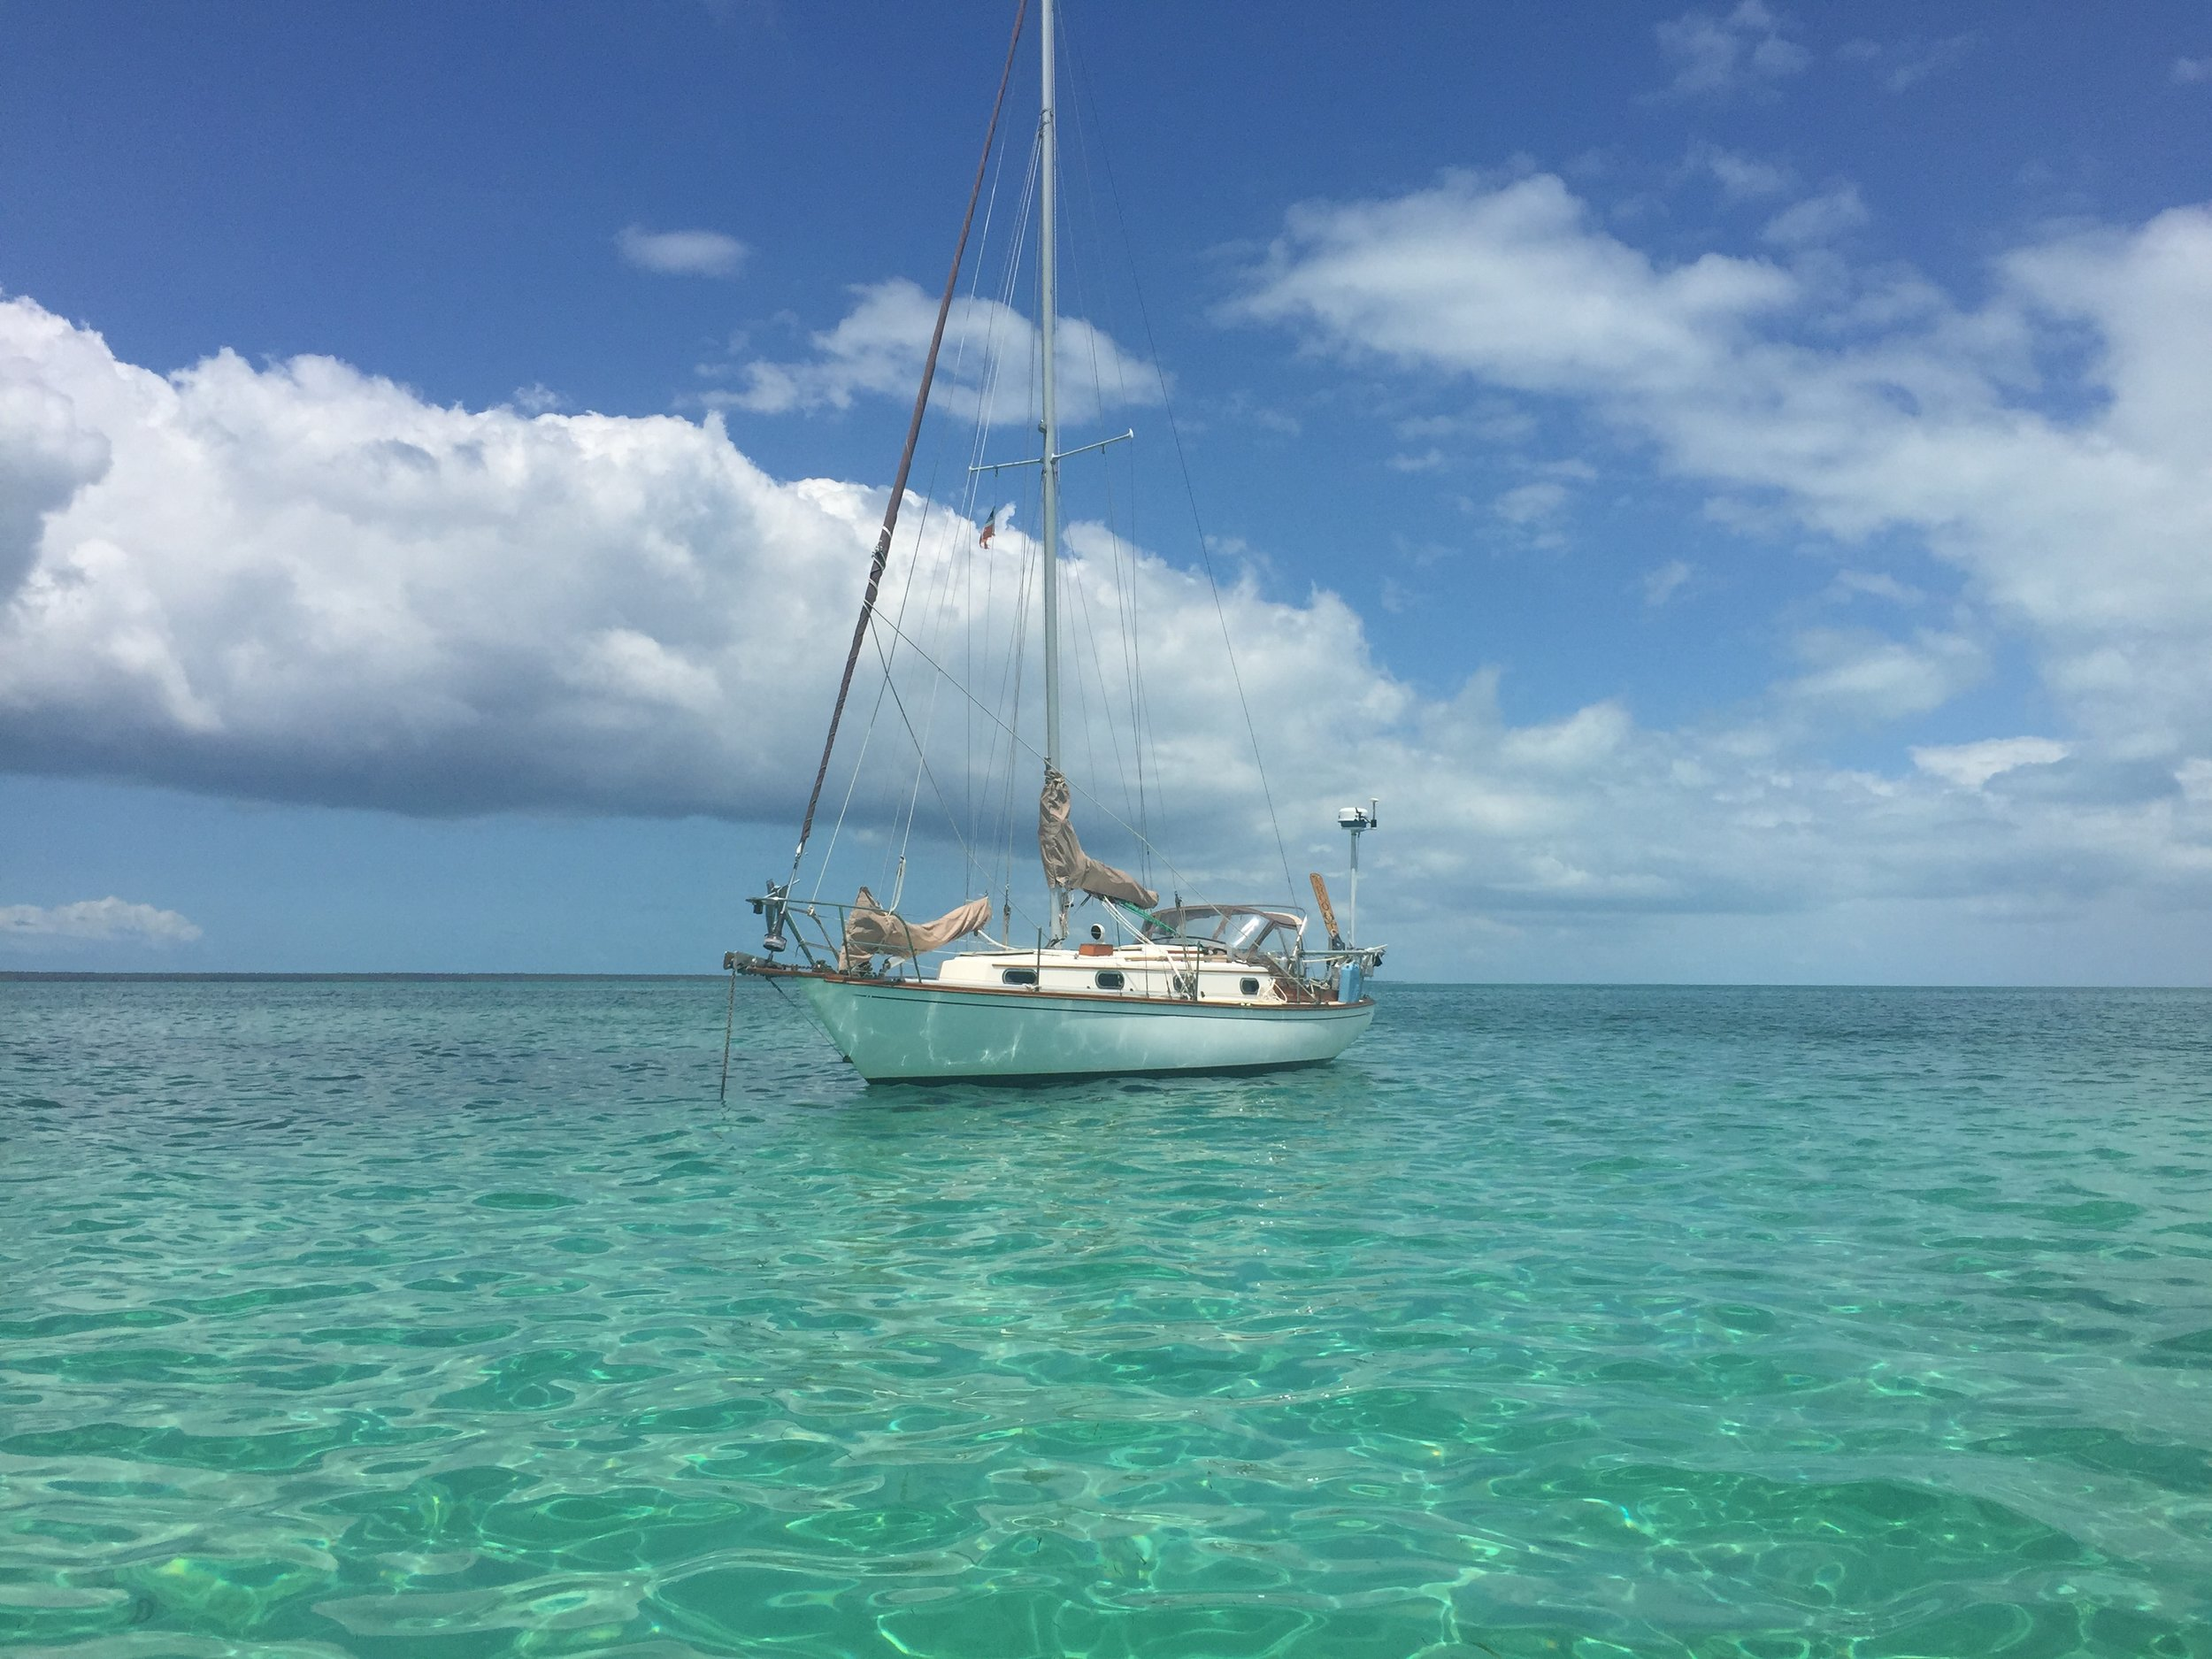 Argo anchored off Green Turtle Cay, Bahamas.